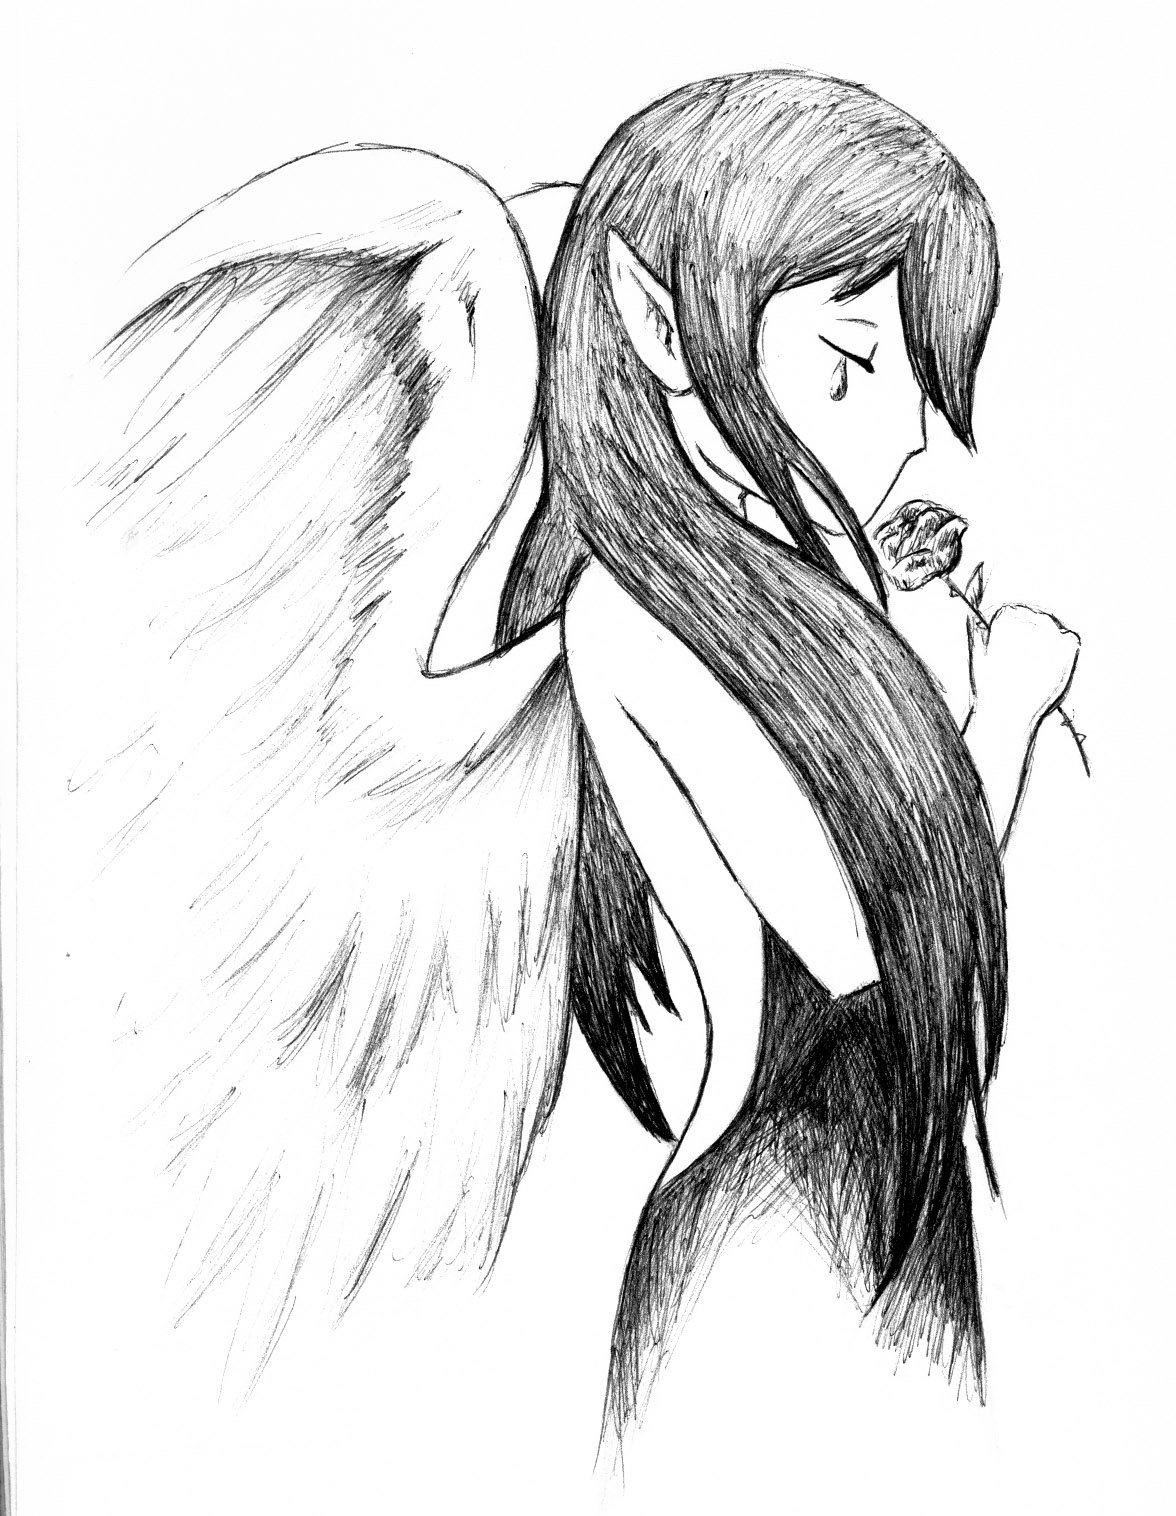 1176x1516 Sad Angel Anime Drawings In Pencil Pencil Drawing Sad Angel Images